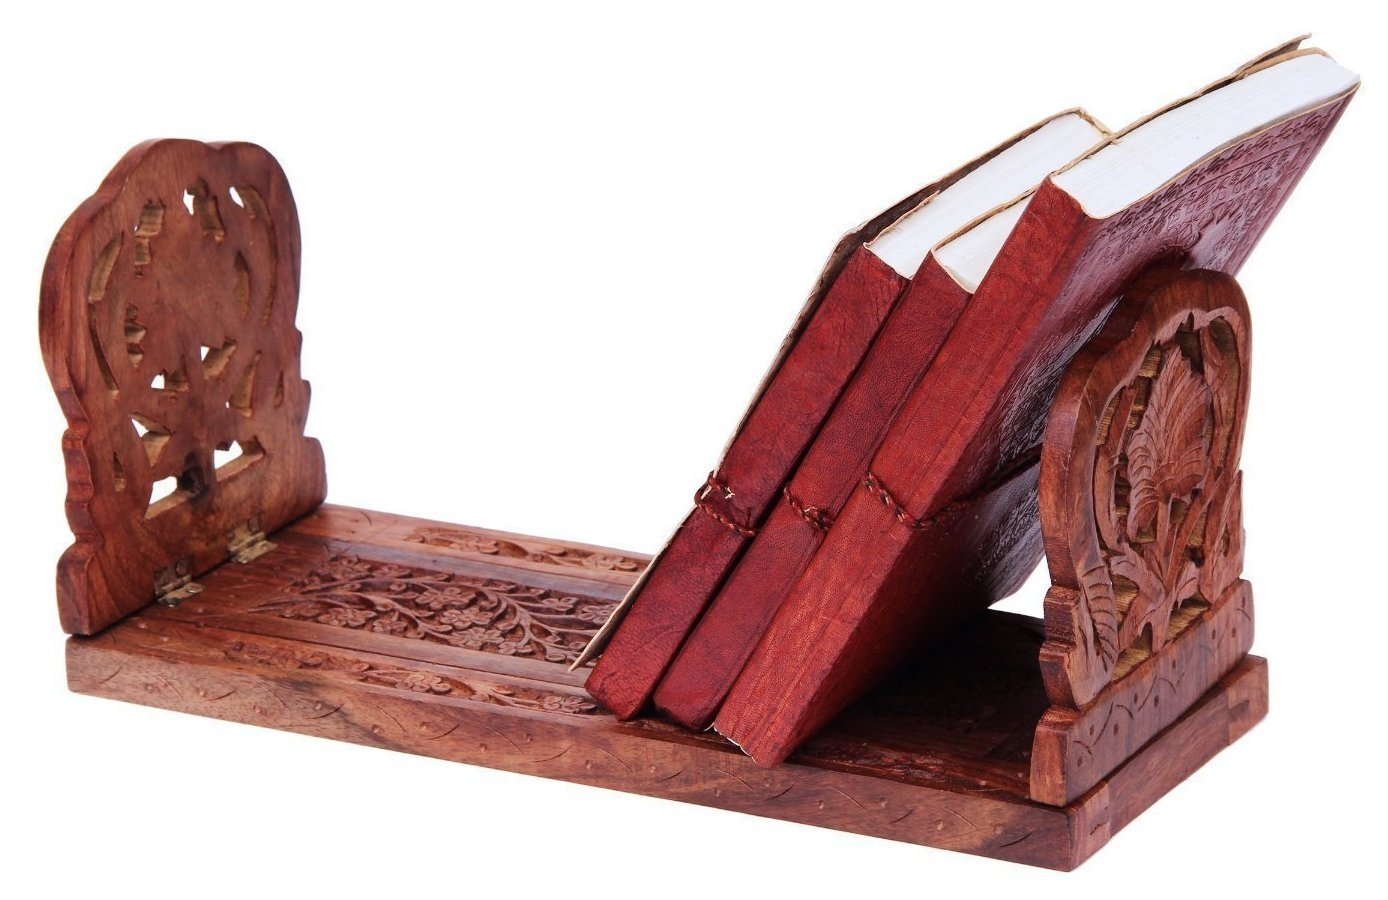 Store Indya Bookends Wooden Handmade Book or CD DVD Stand Rack Holder Shelf Folding Expandable Book End with Intricate Floral